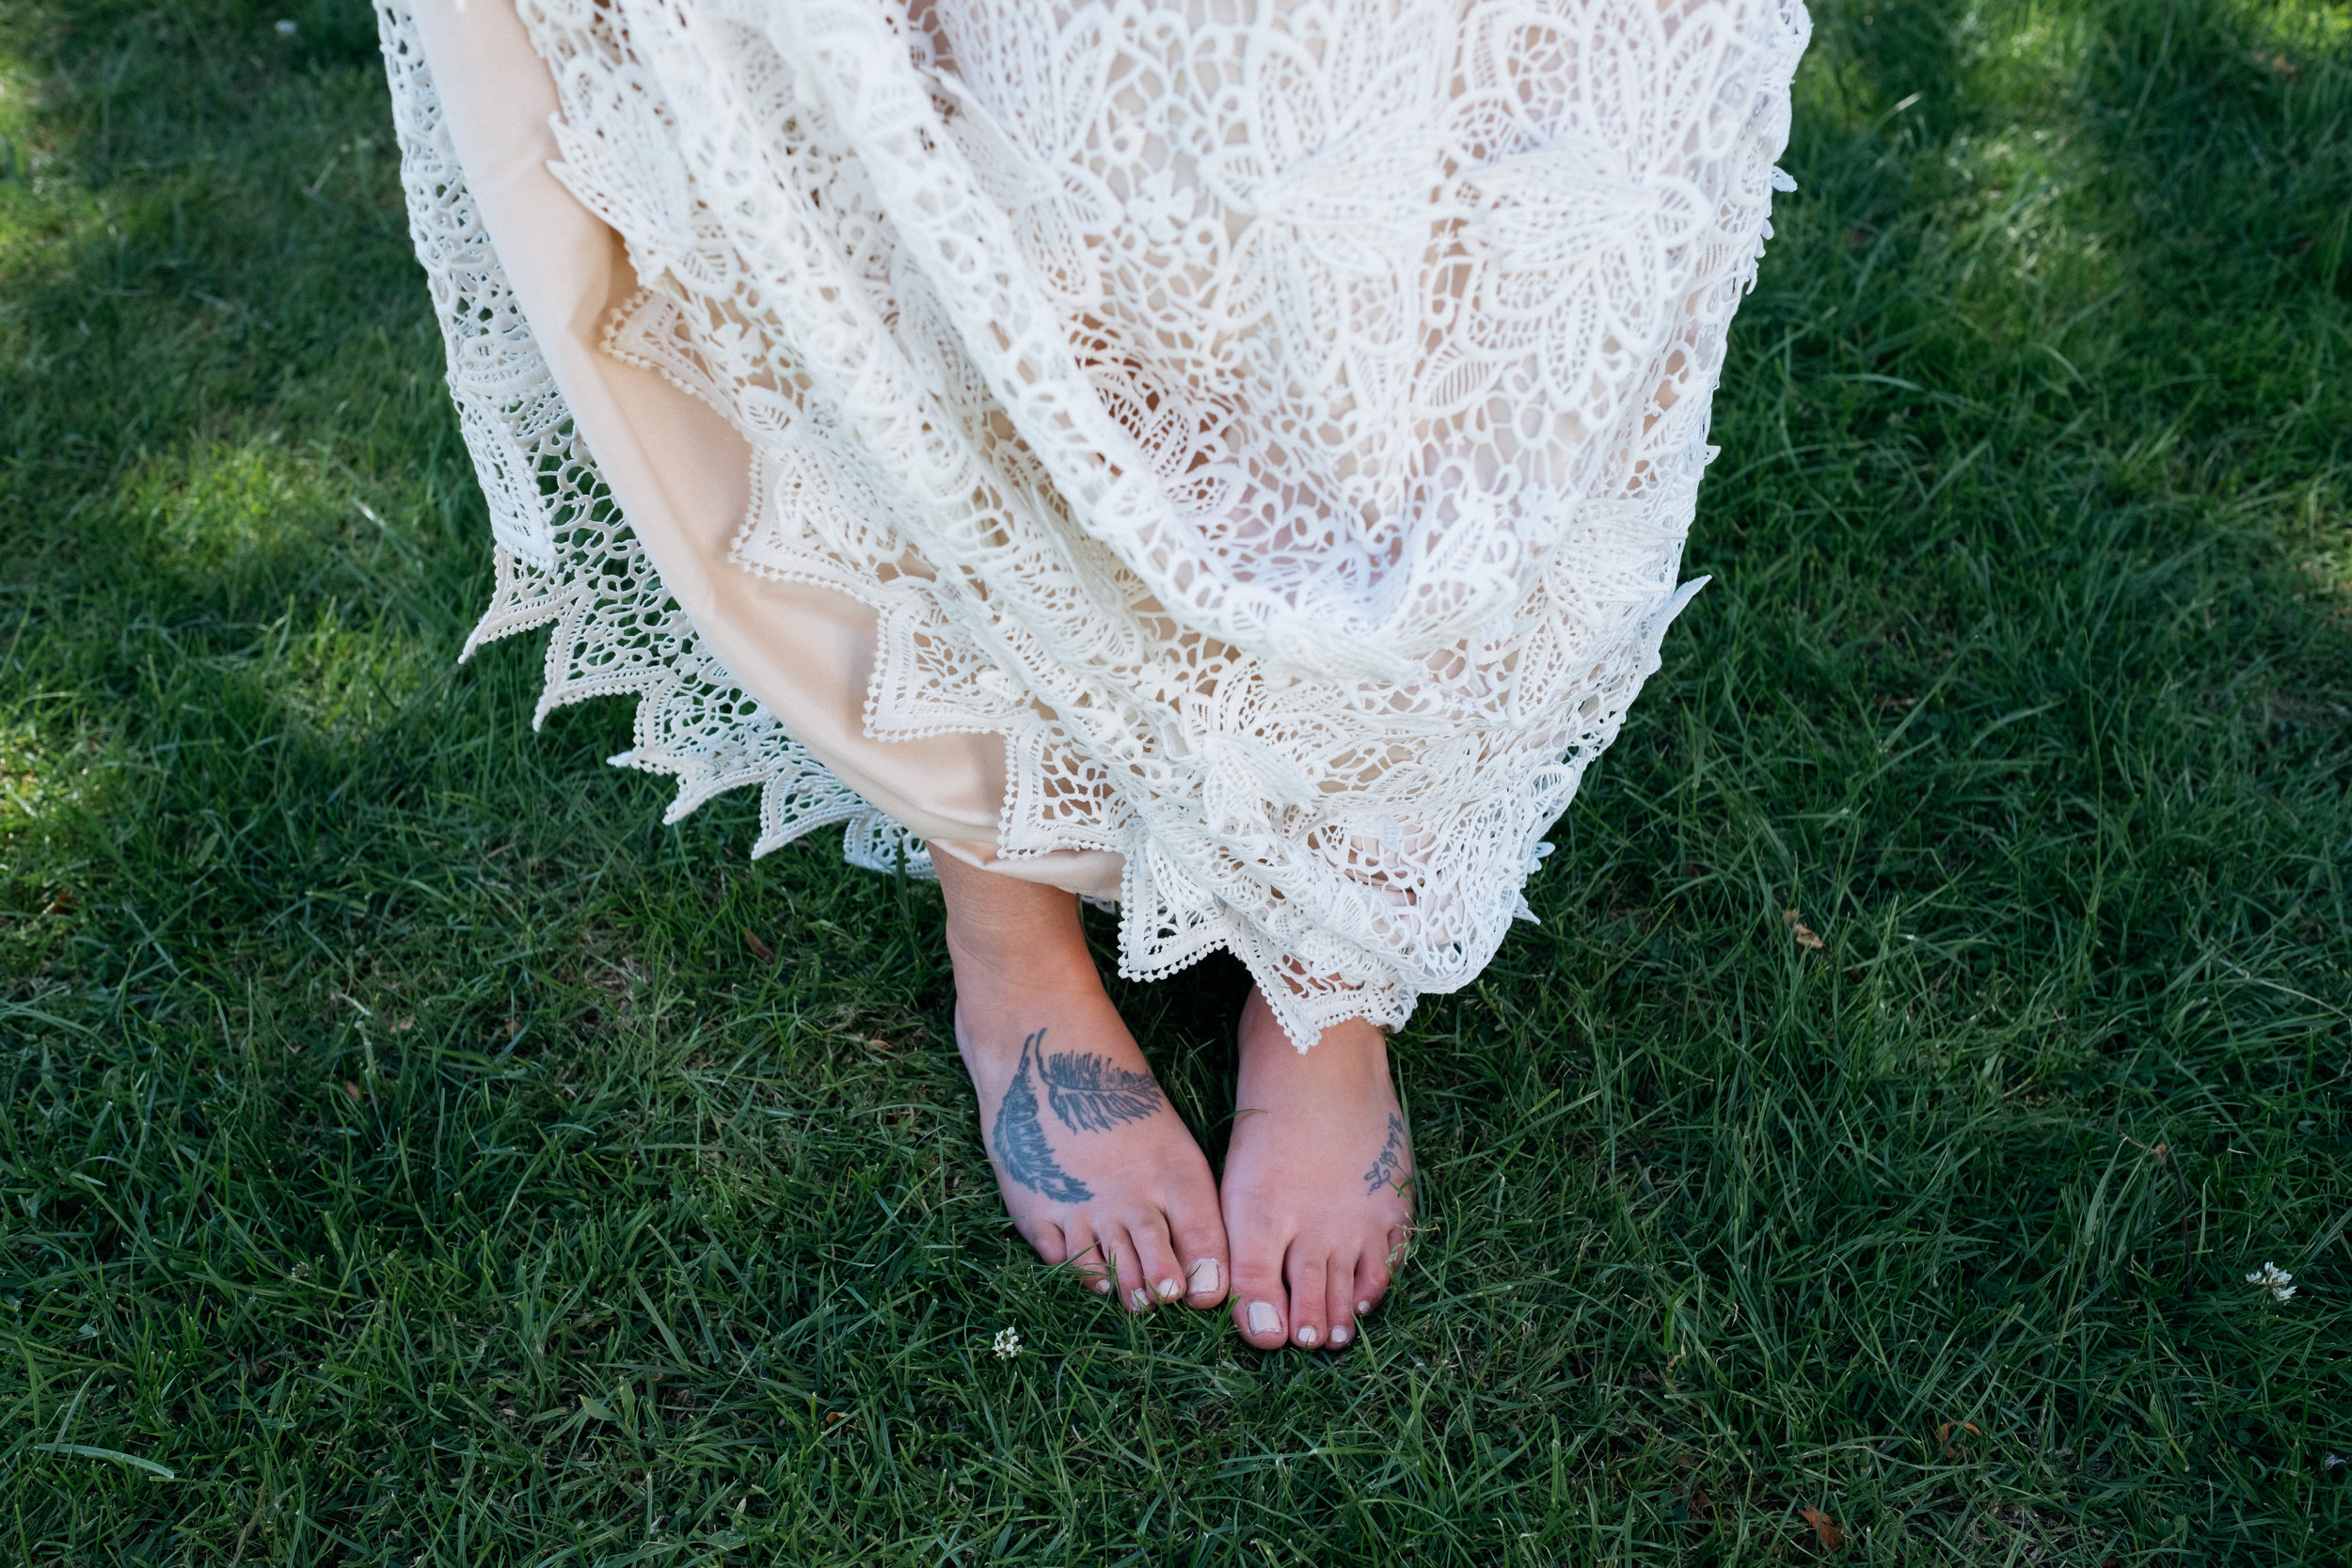 Barefoot bohemian bride with alternative lace wedding dress